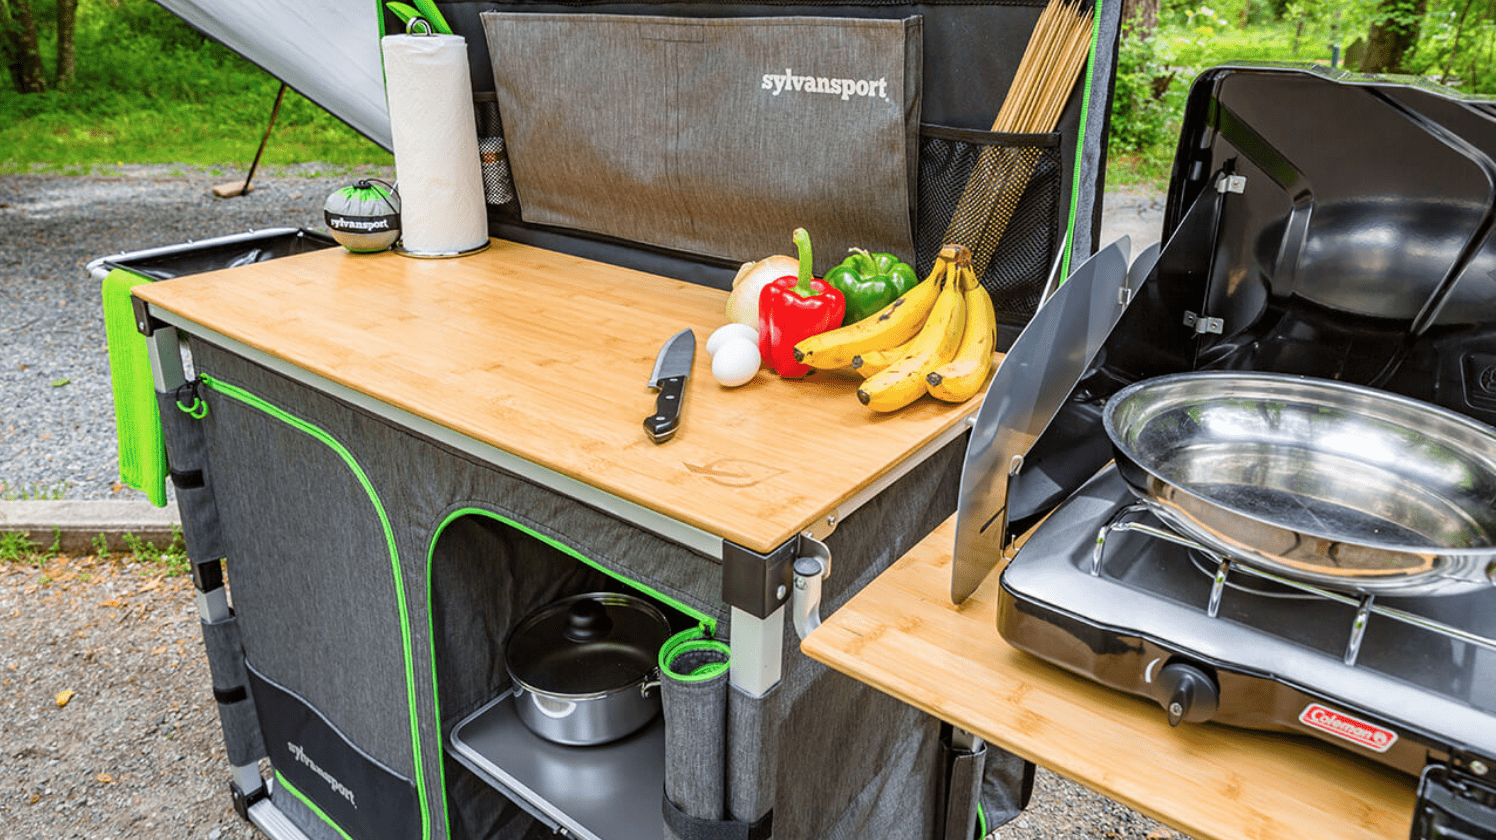 camp kitchen set up campside with bananas, peppers, knife and pan about to be used.